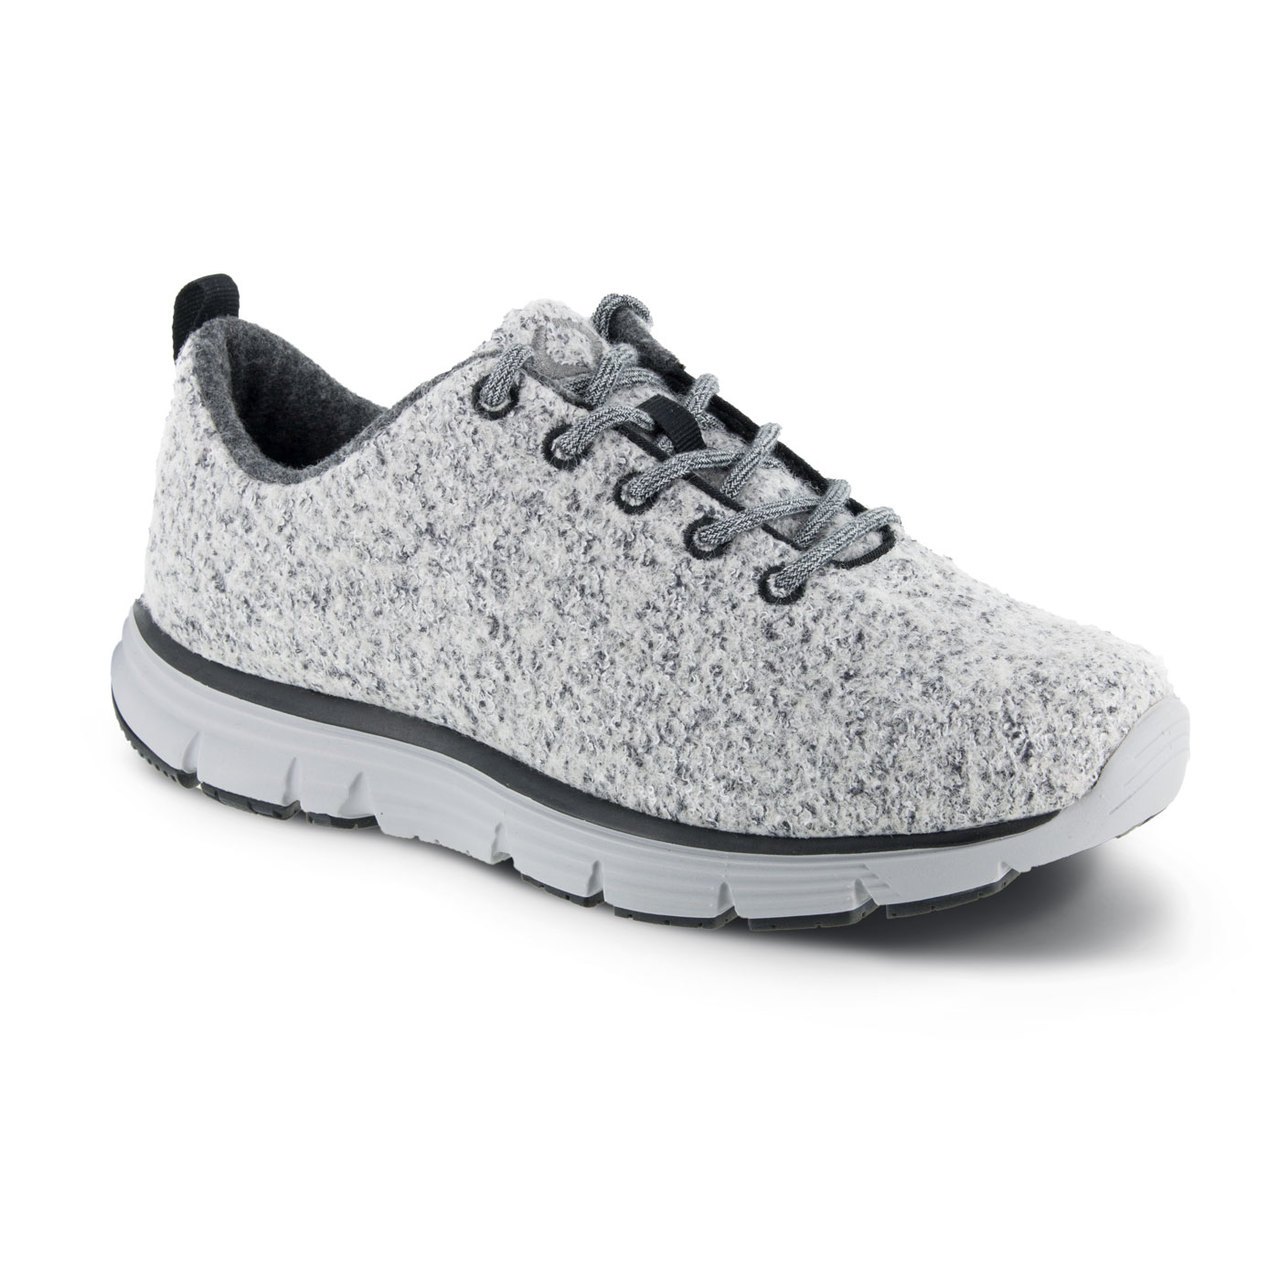 separation shoes 80978 45c38 Women's Natural FitLite Wool Knit - Light Grey |Apexfoot.com